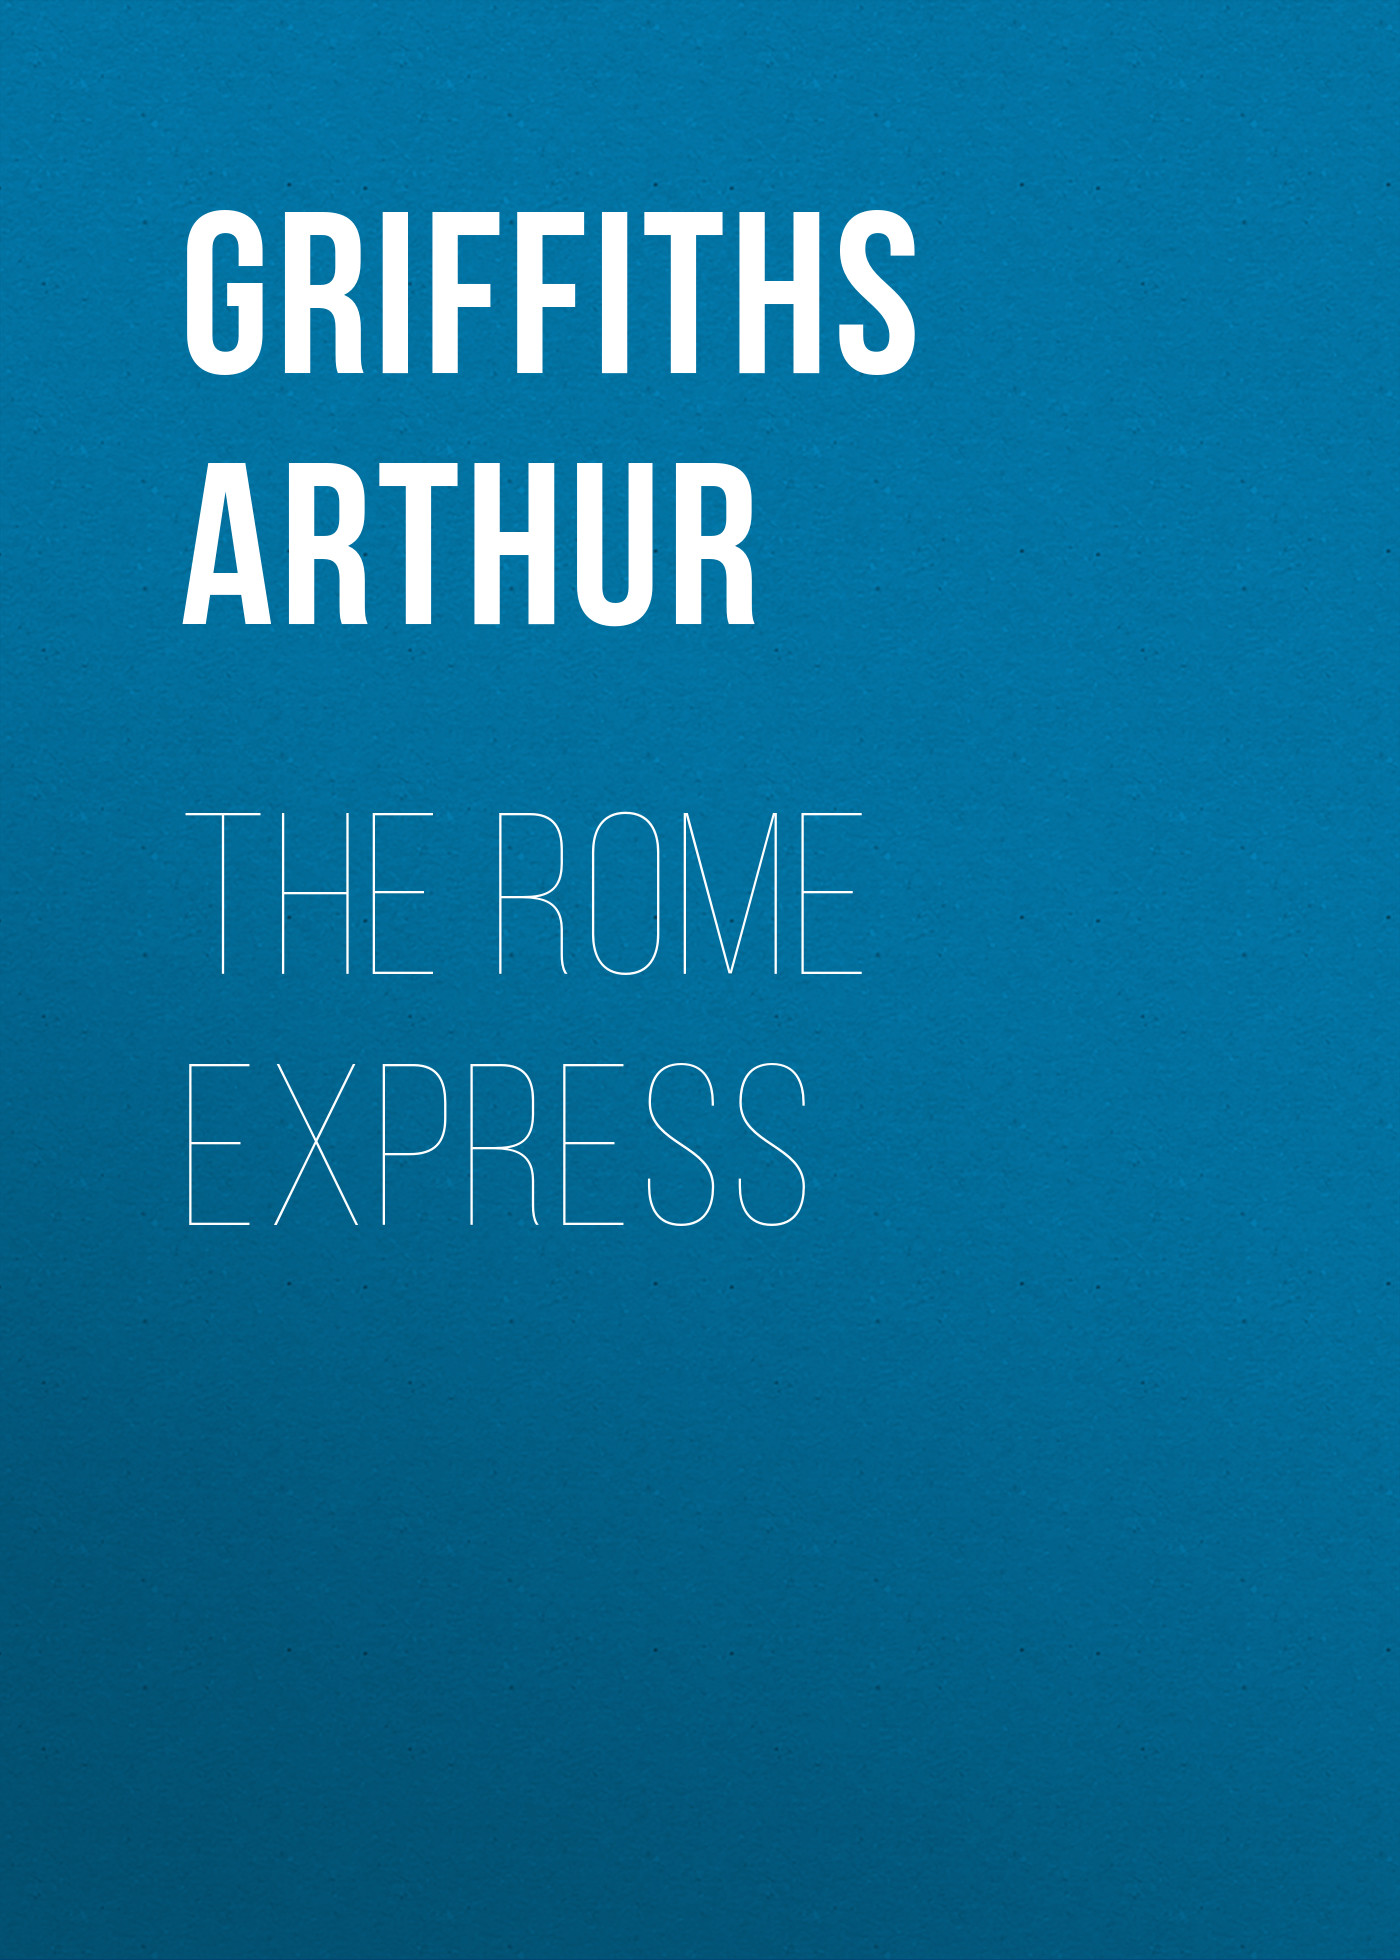 Griffiths Arthur The Rome Express griffiths arthur the queen s shilling